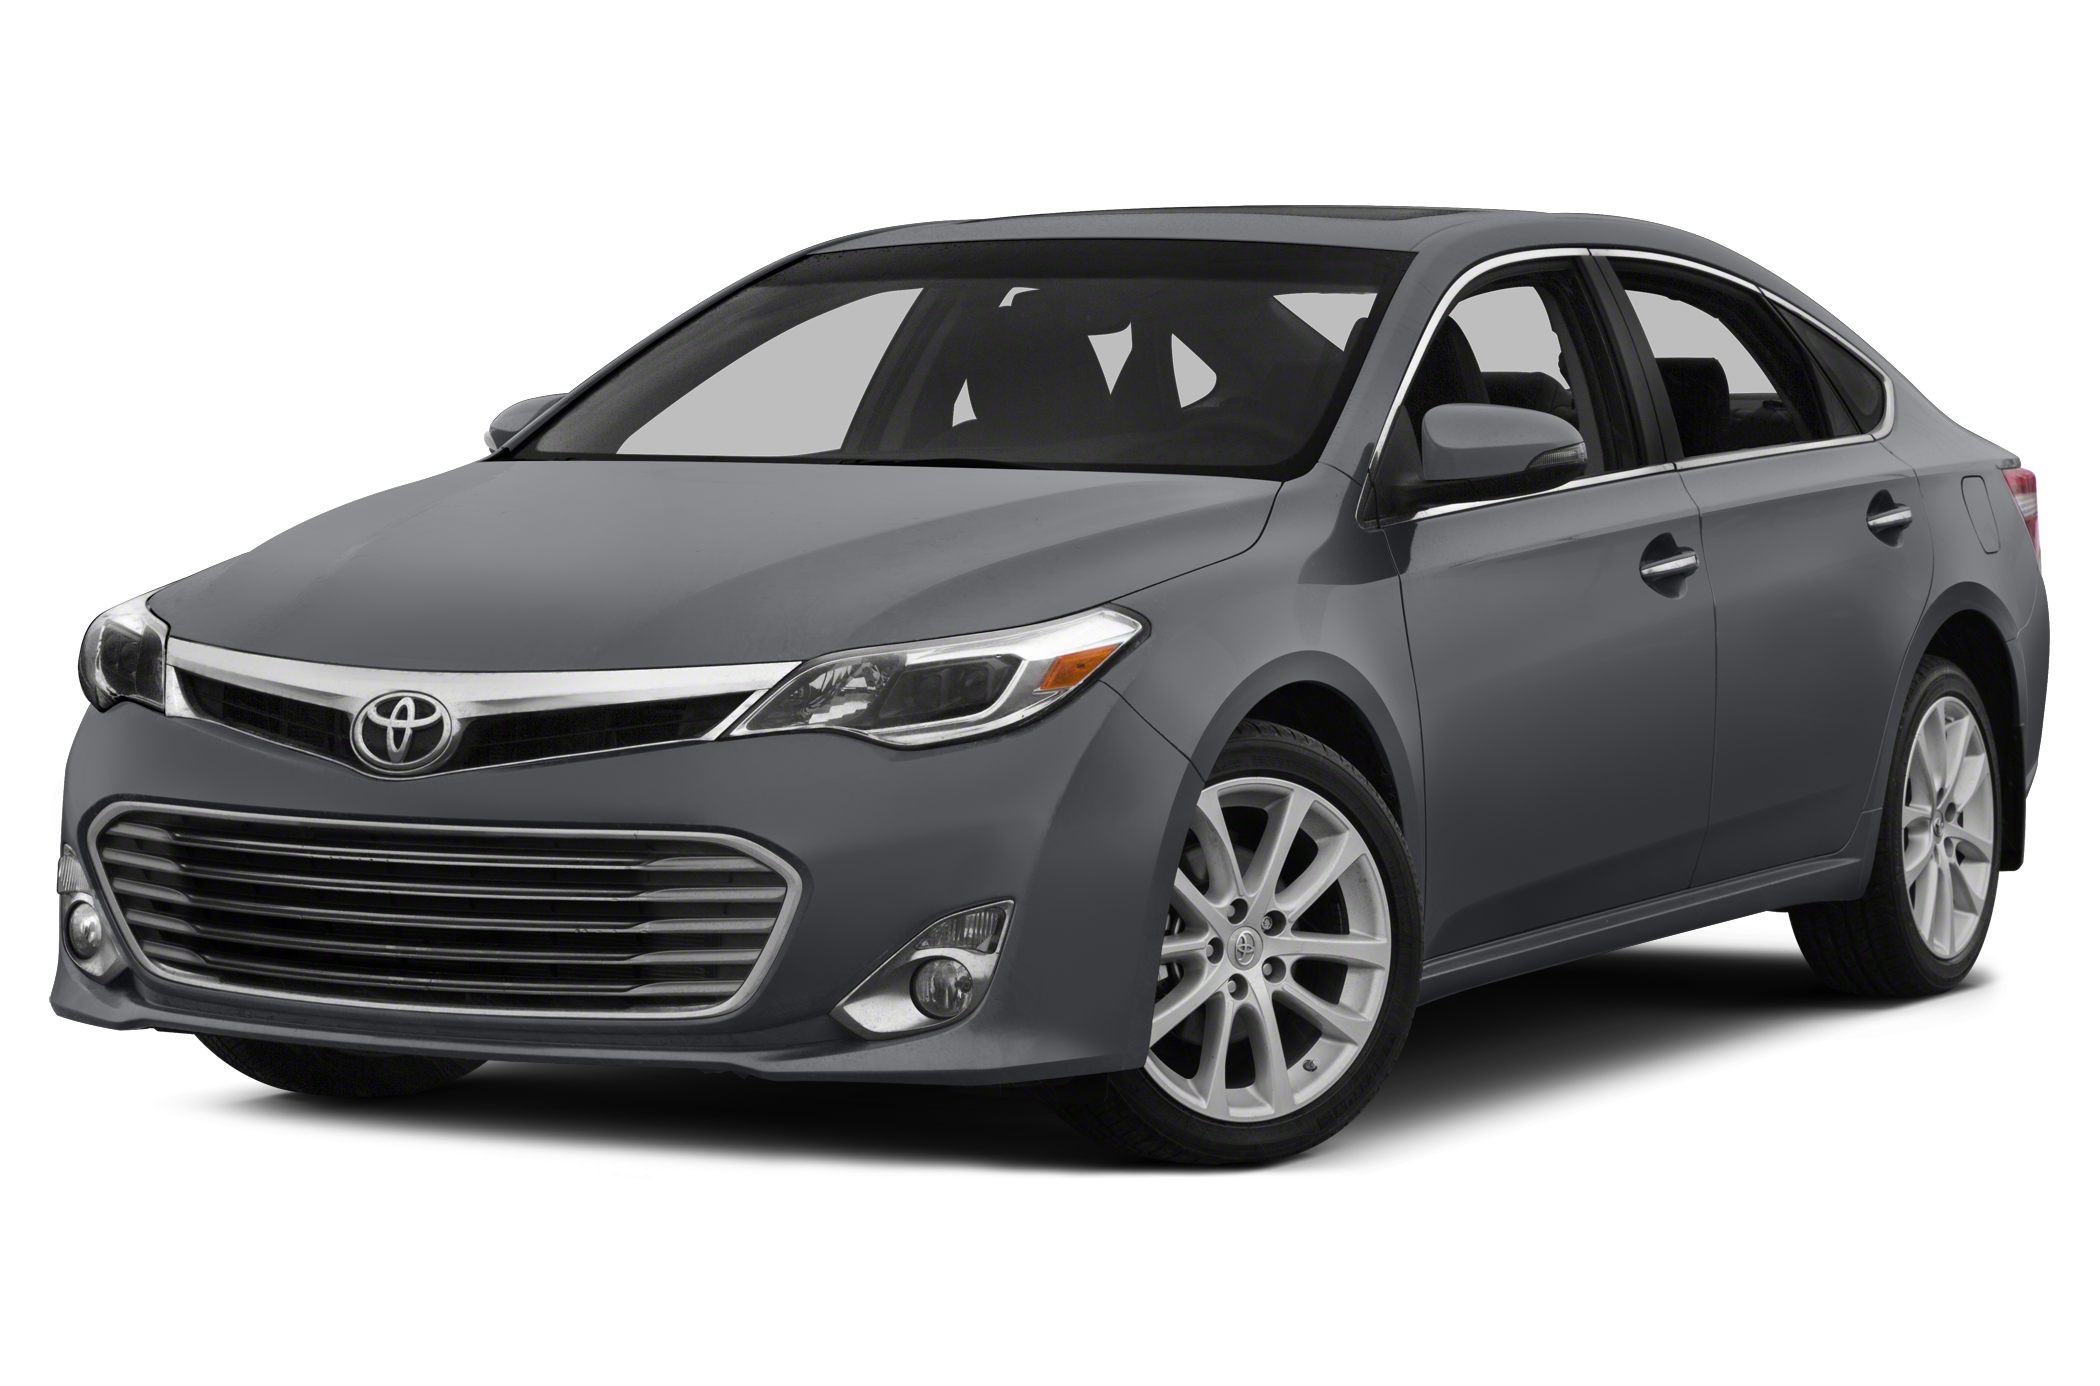 2015 Toyota Avalon XLE Touring Sedan for sale in Harrisburg for $34,163 with 3 miles